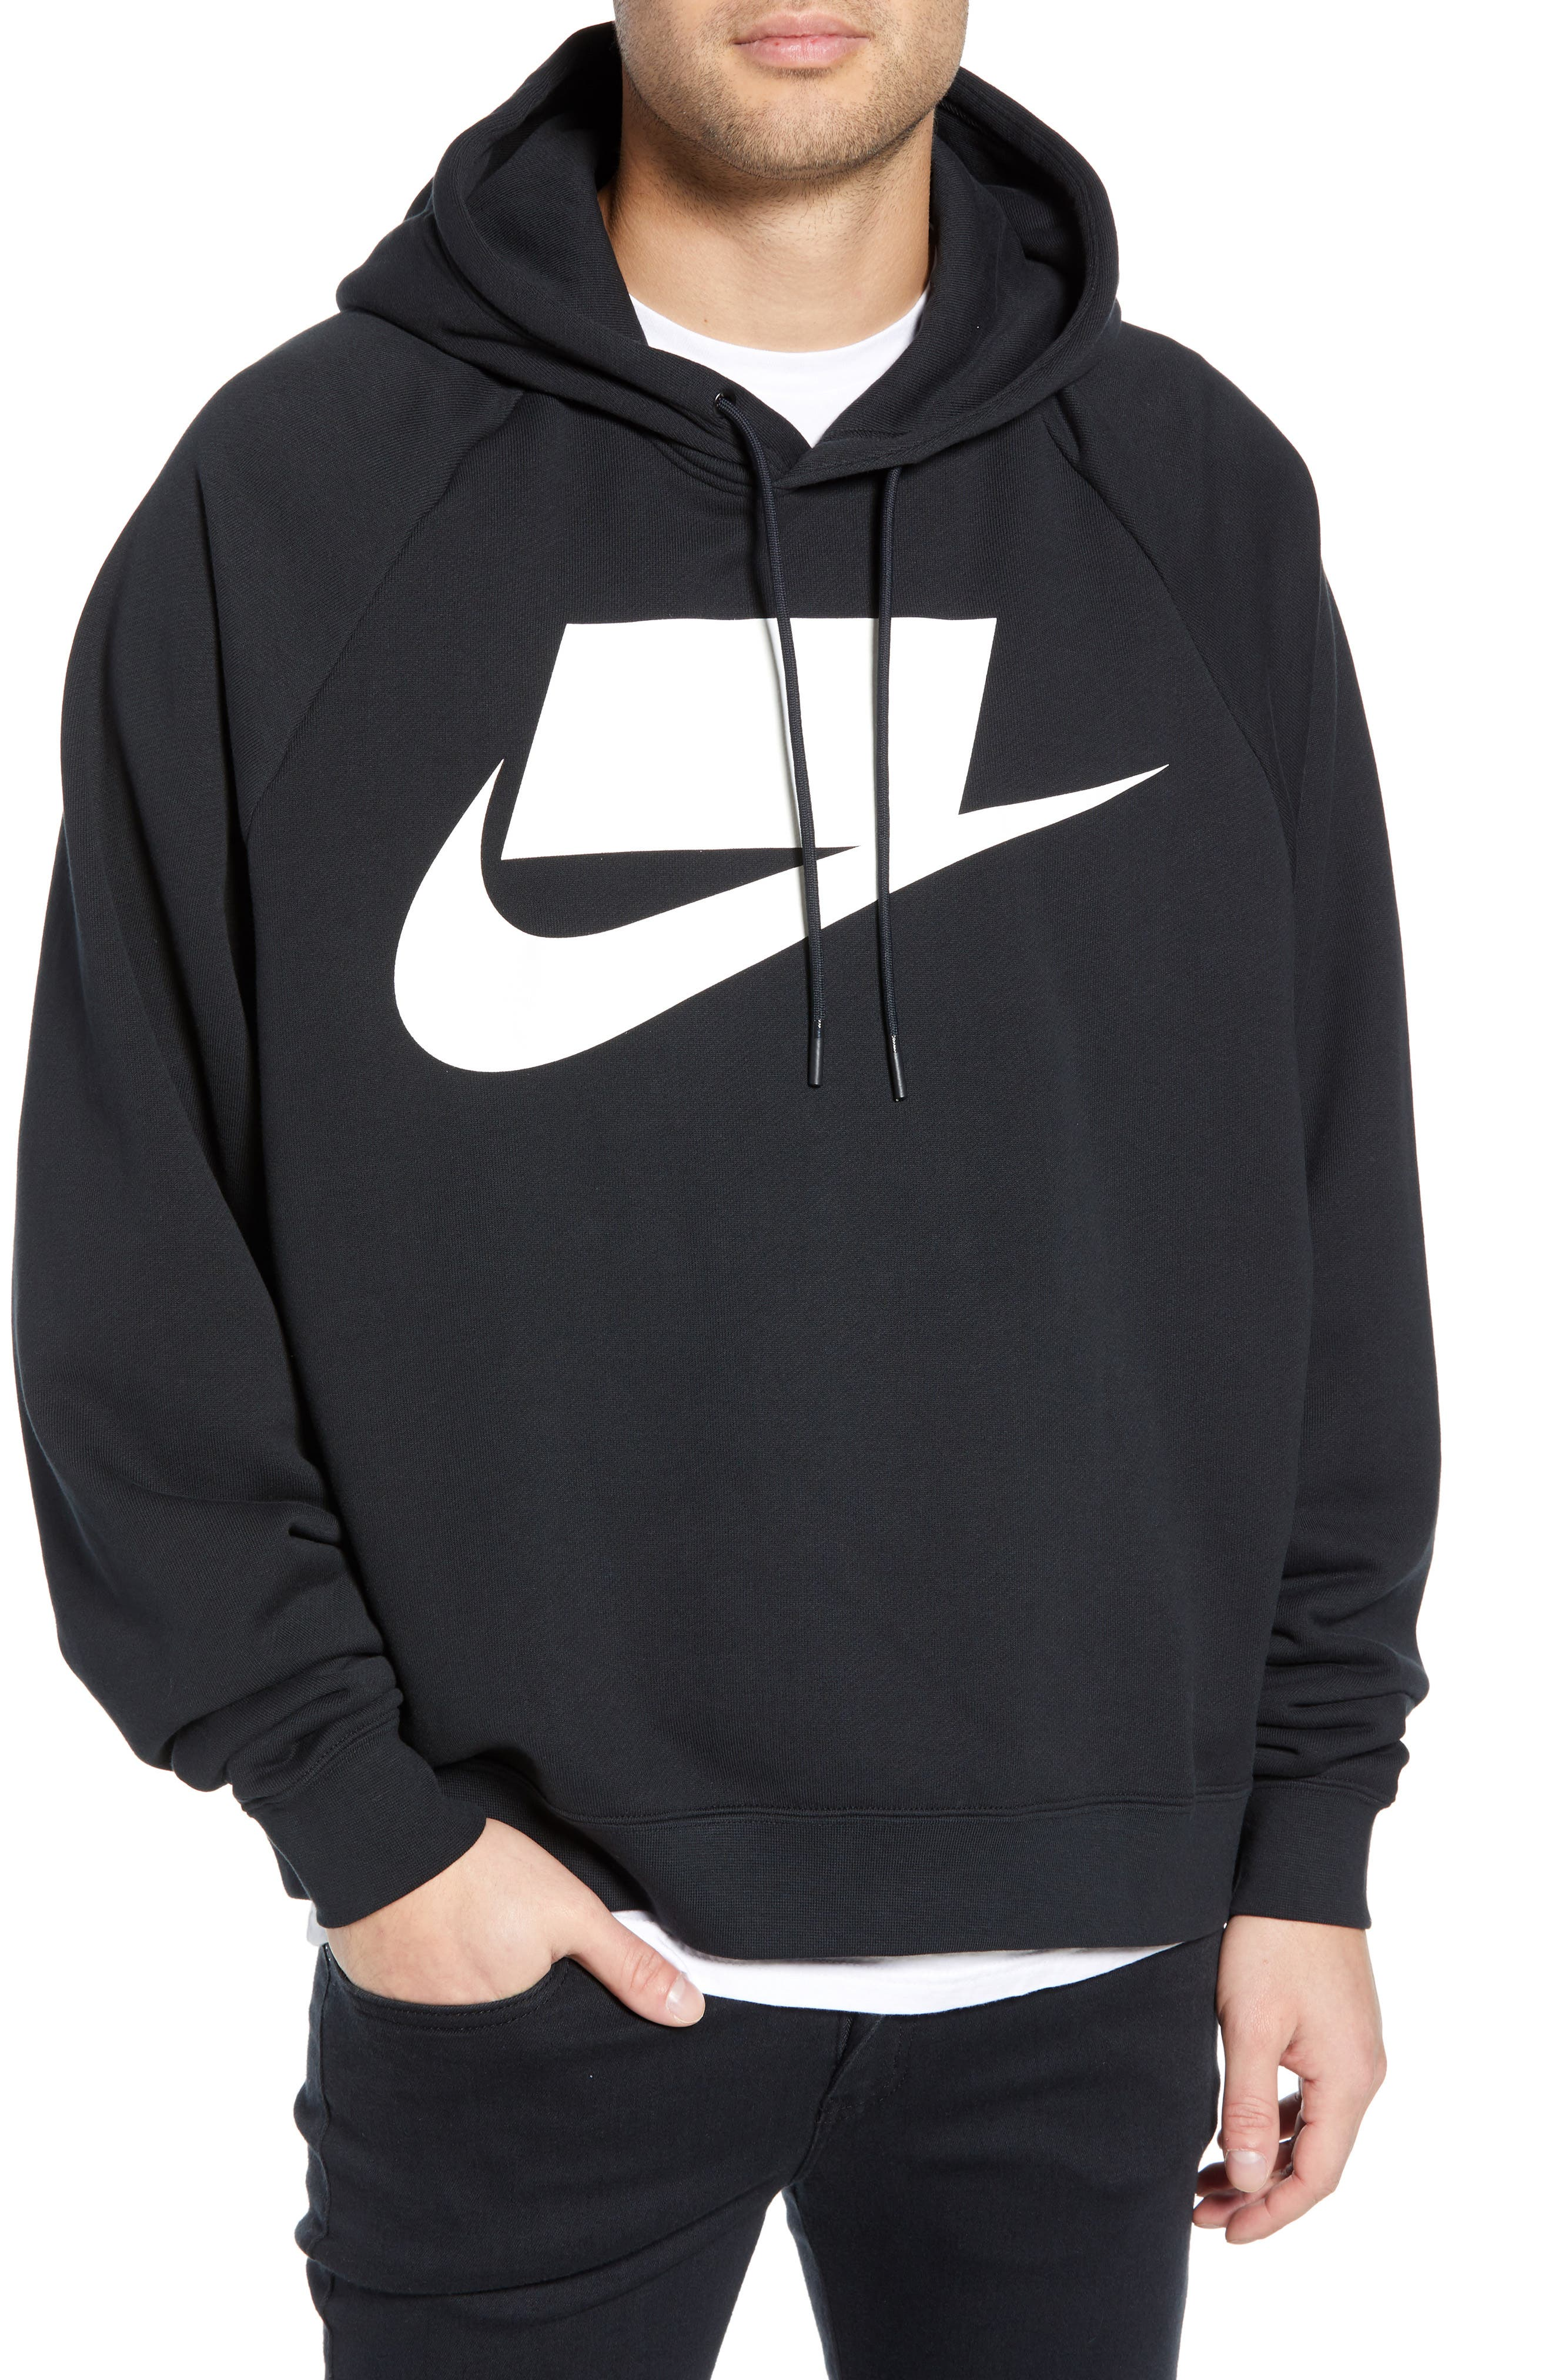 NIKE Sportswear NSW Men's French Terry Hoodie, Main, color, BLACK/ WHITE